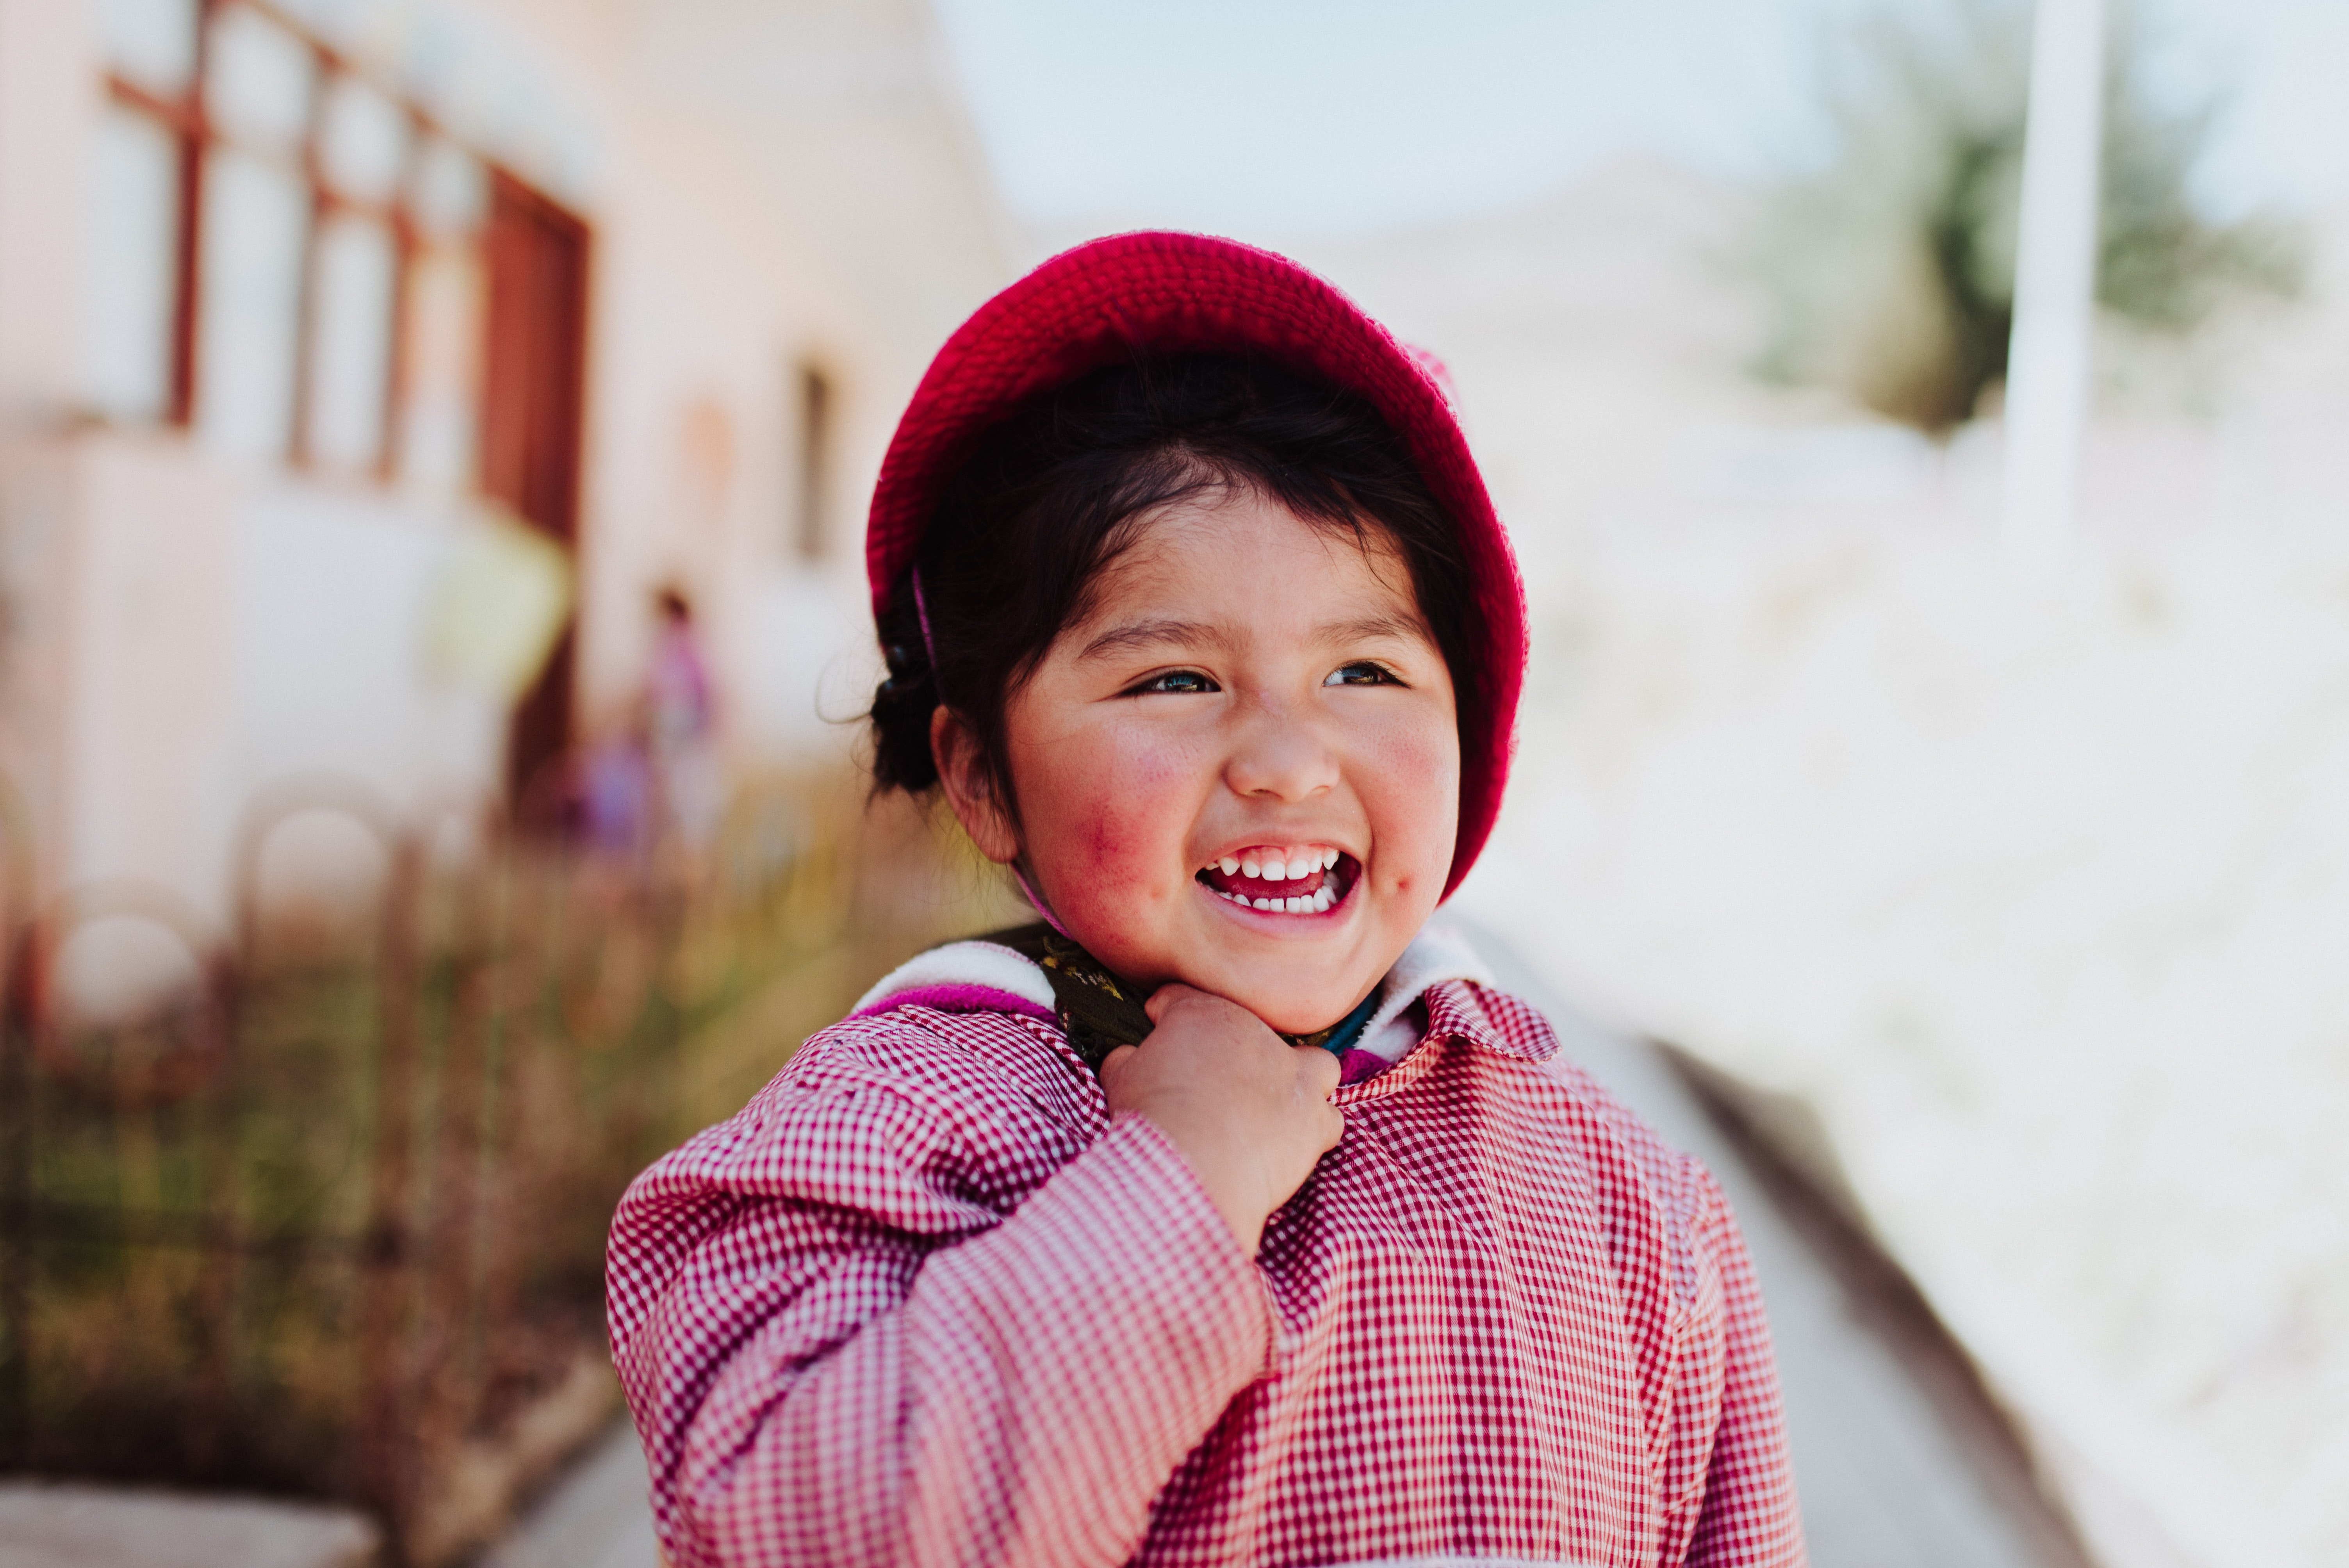 selective focus photo of smiling child